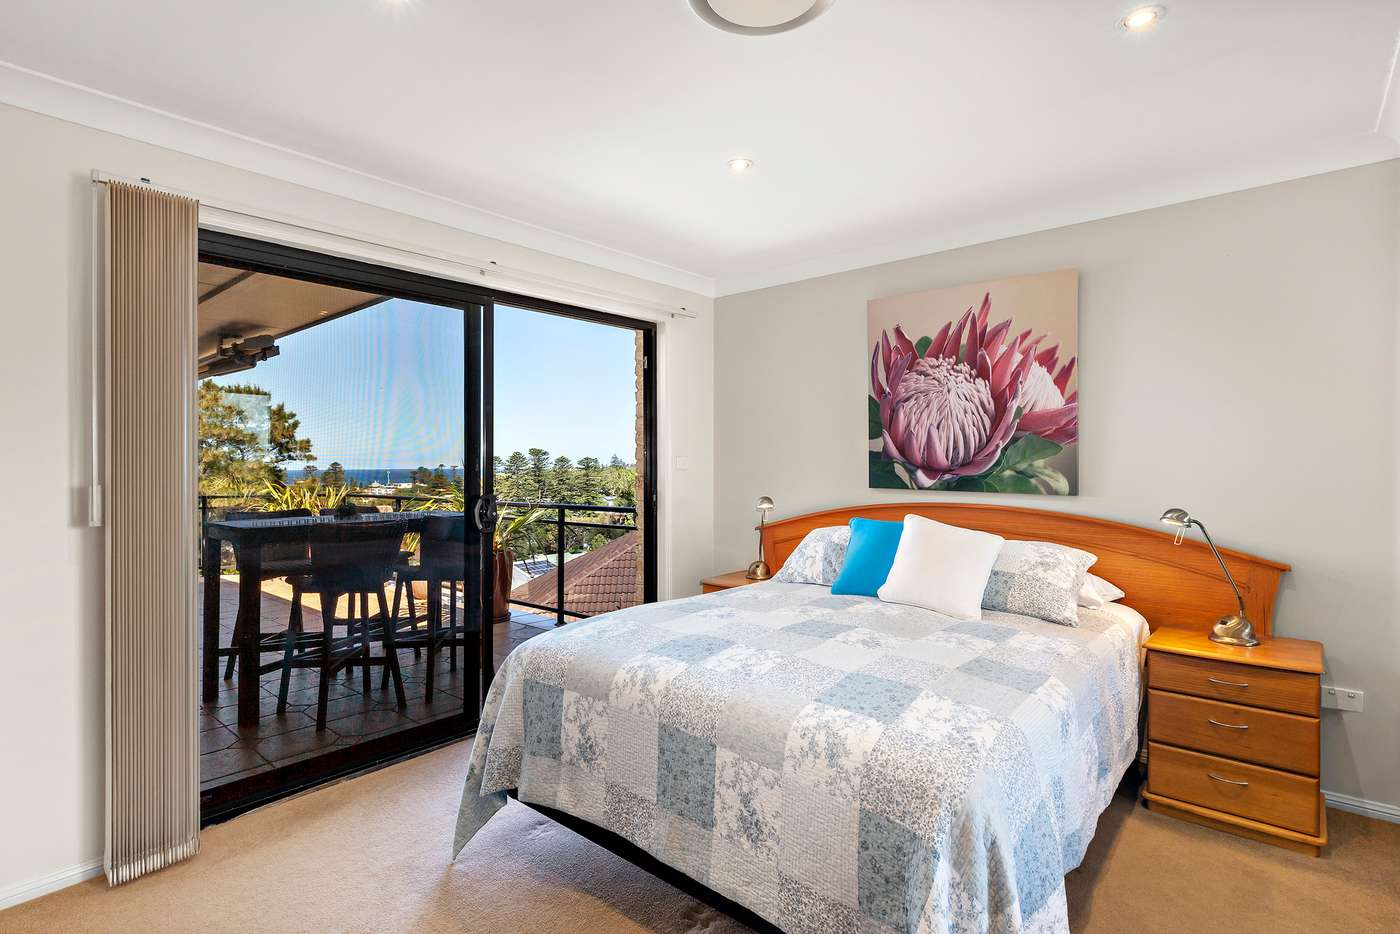 Fifth view of Homely townhouse listing, 2/44 Minnamurra Street, Kiama NSW 2533